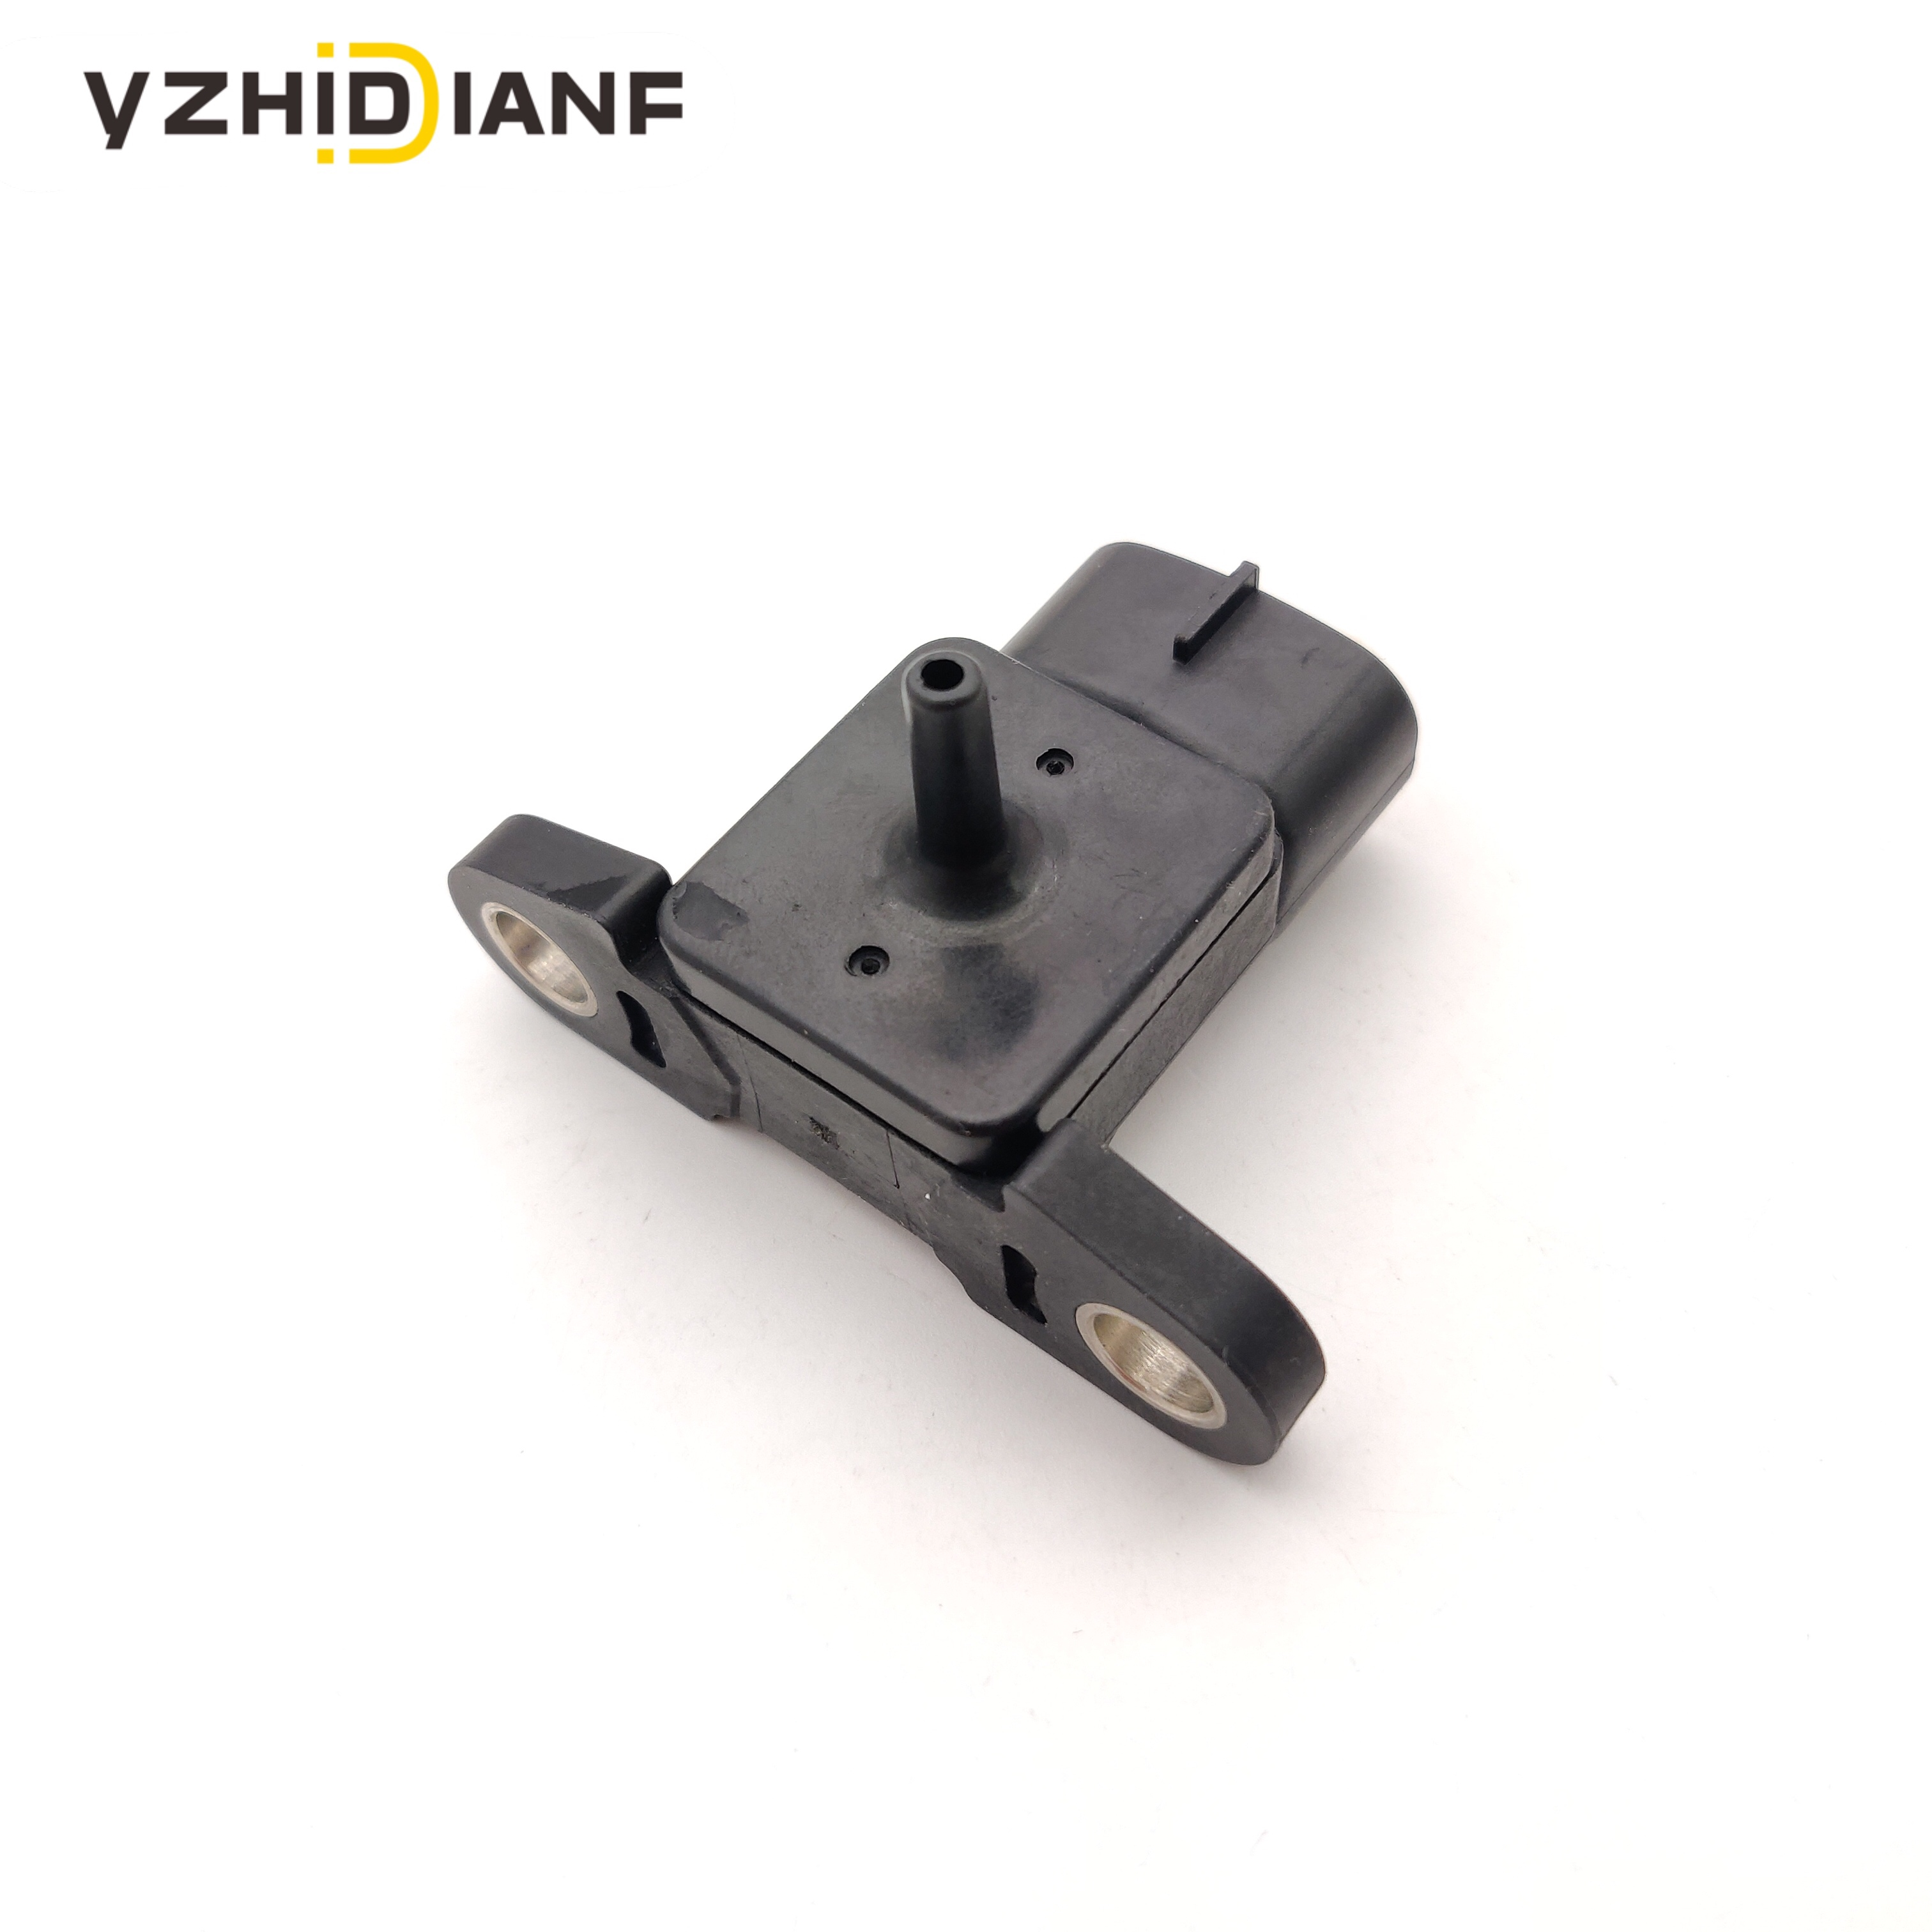 Manifold Pressure sensor MAP 079800-5690 0798005690 For Mazda Premacy 2.0D Mazda 626